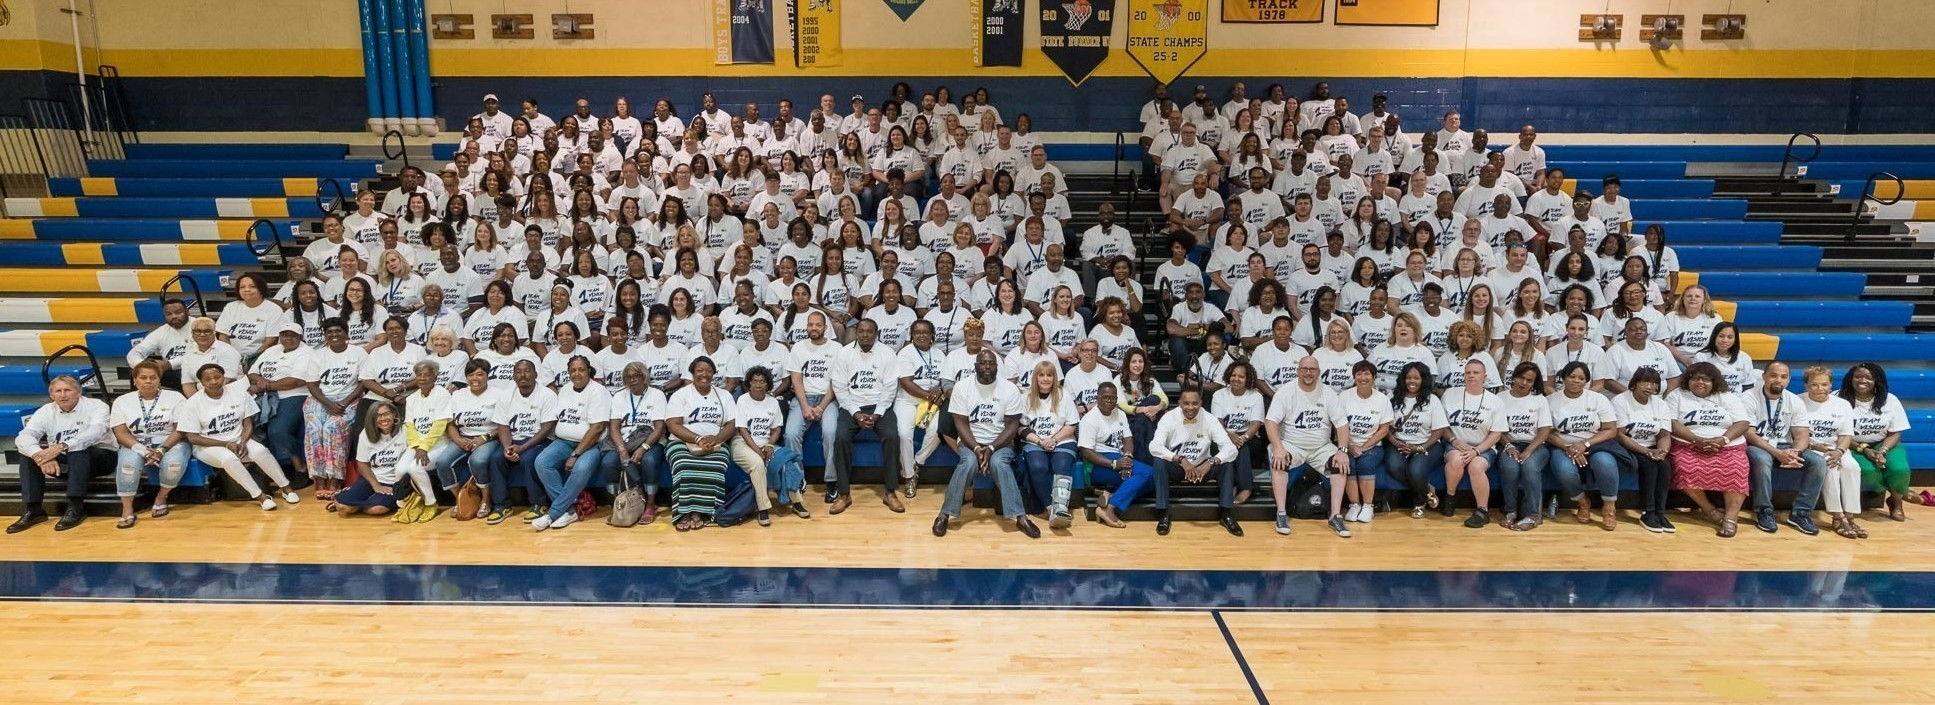 Staff 2018-19 School Year